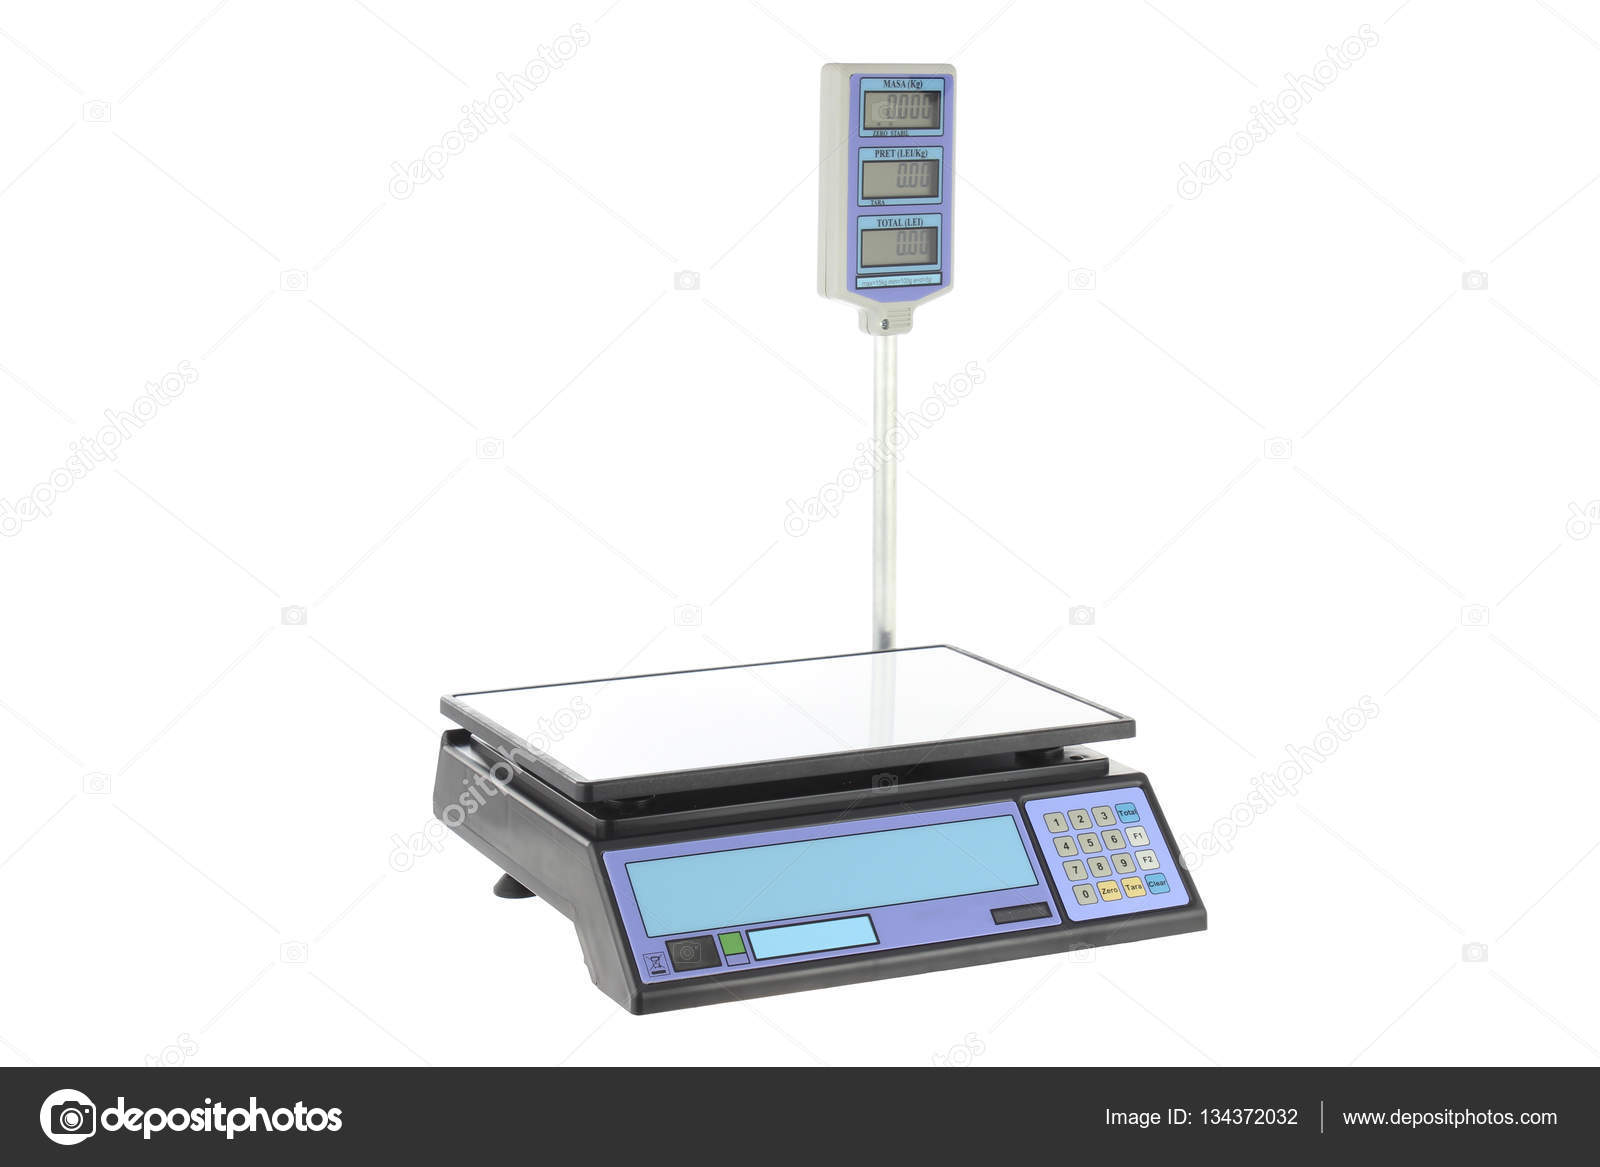 Background Masak Electronic Scales For Weighing Food On A White Background Stock